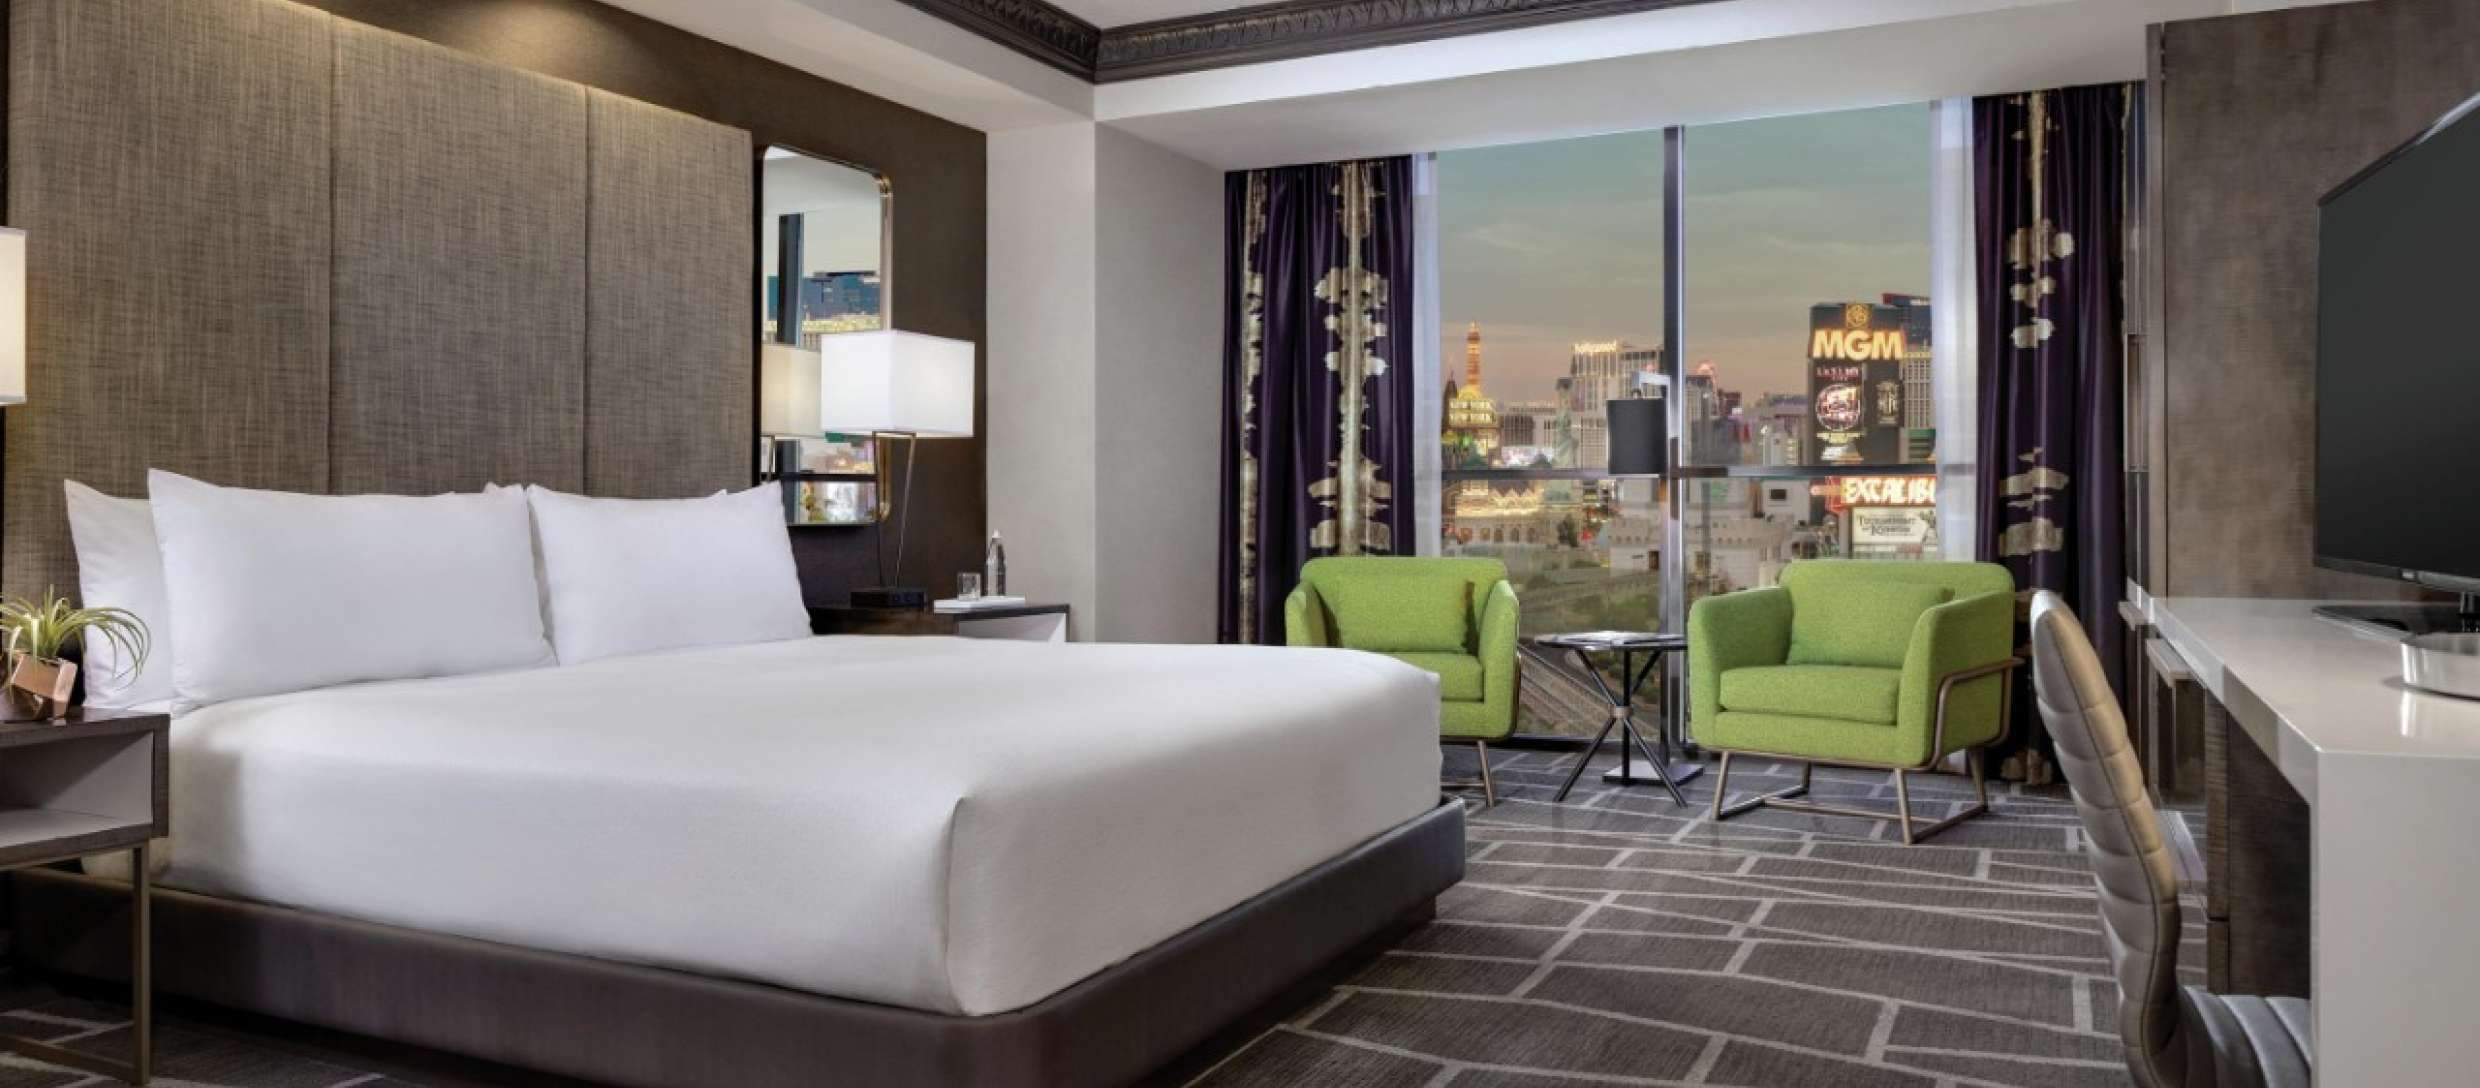 Top 10 Best Budget Friendly Hotels in Las Vegas